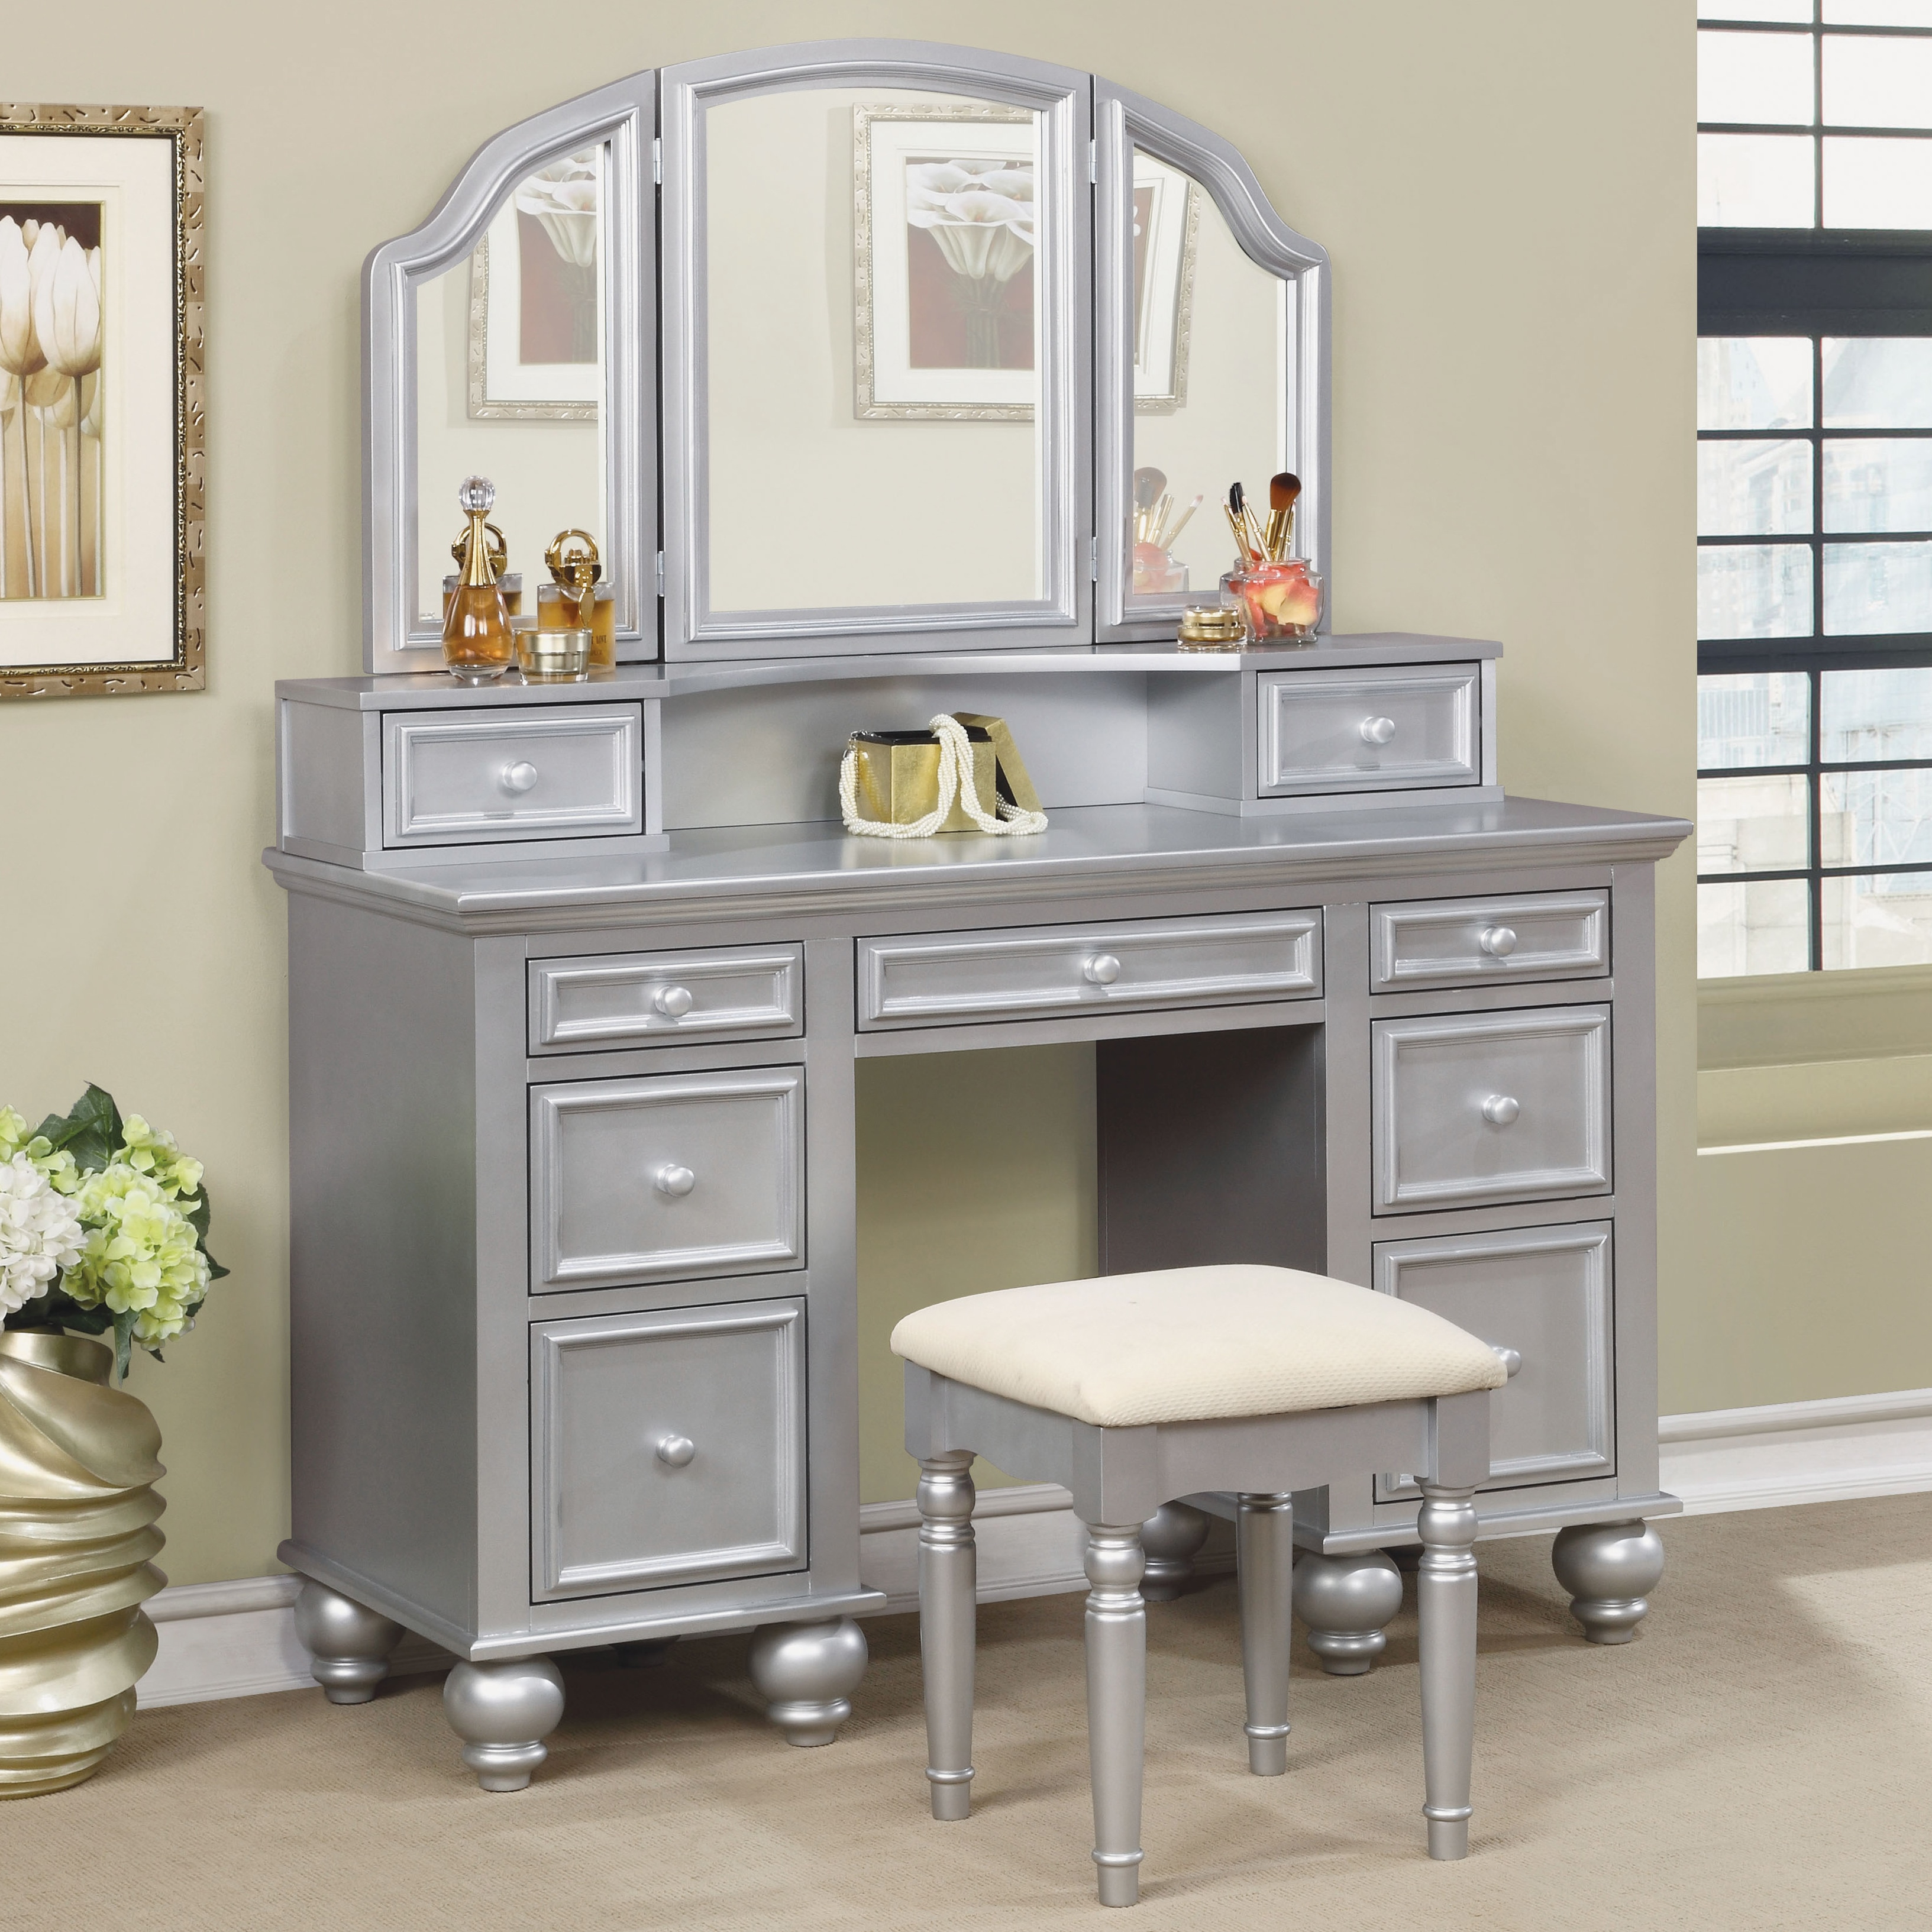 Wondrous Shianne Contemporary 2 Piece Vanity Table Set By Foa Gmtry Best Dining Table And Chair Ideas Images Gmtryco